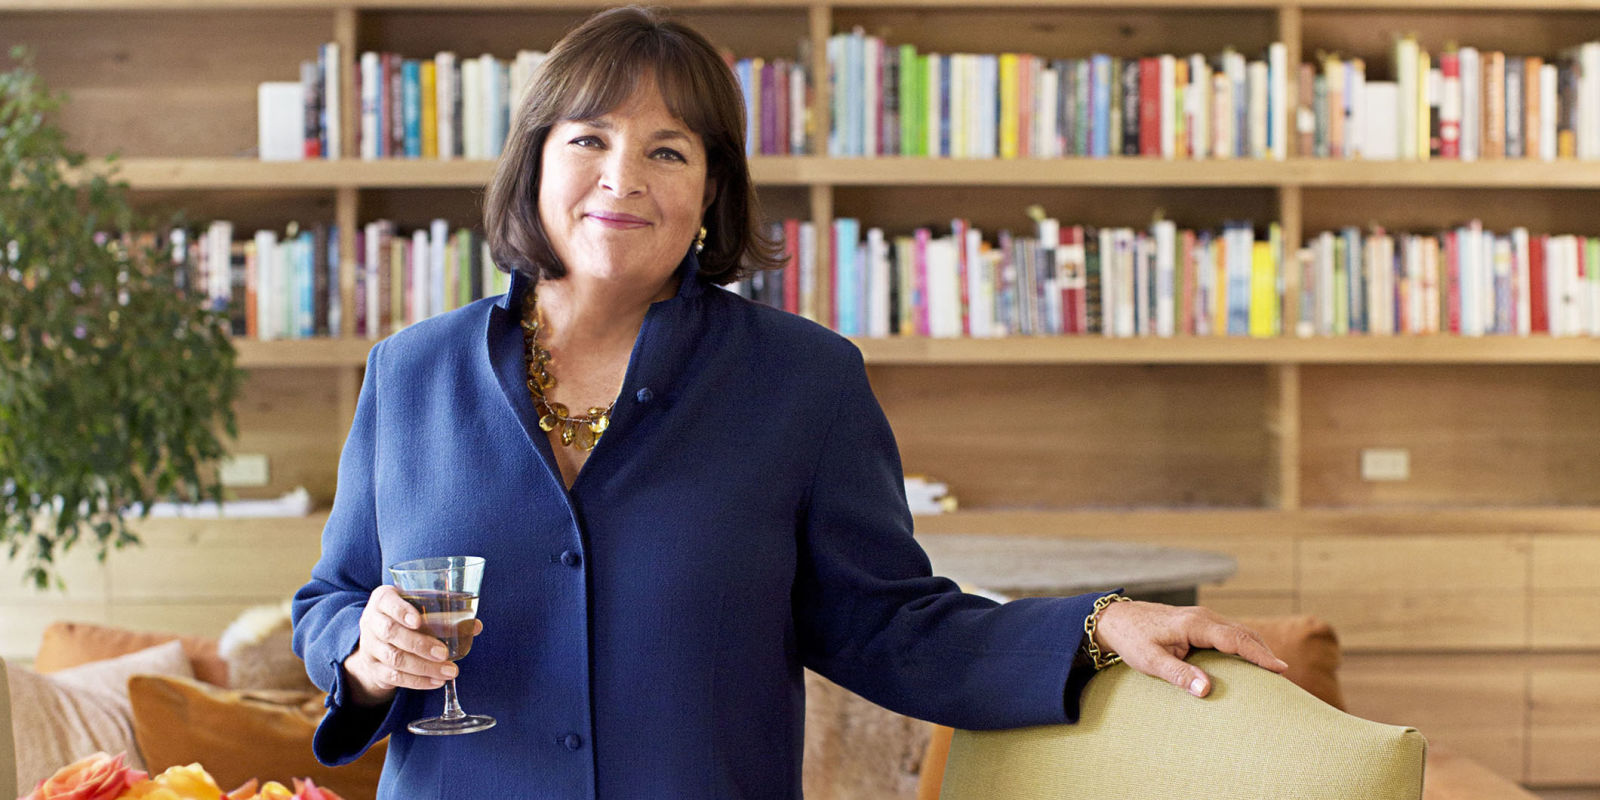 Ina Garten Interesting 13 Things You Never Knew About Ina Garten  Ina Garten Facts Design Inspiration